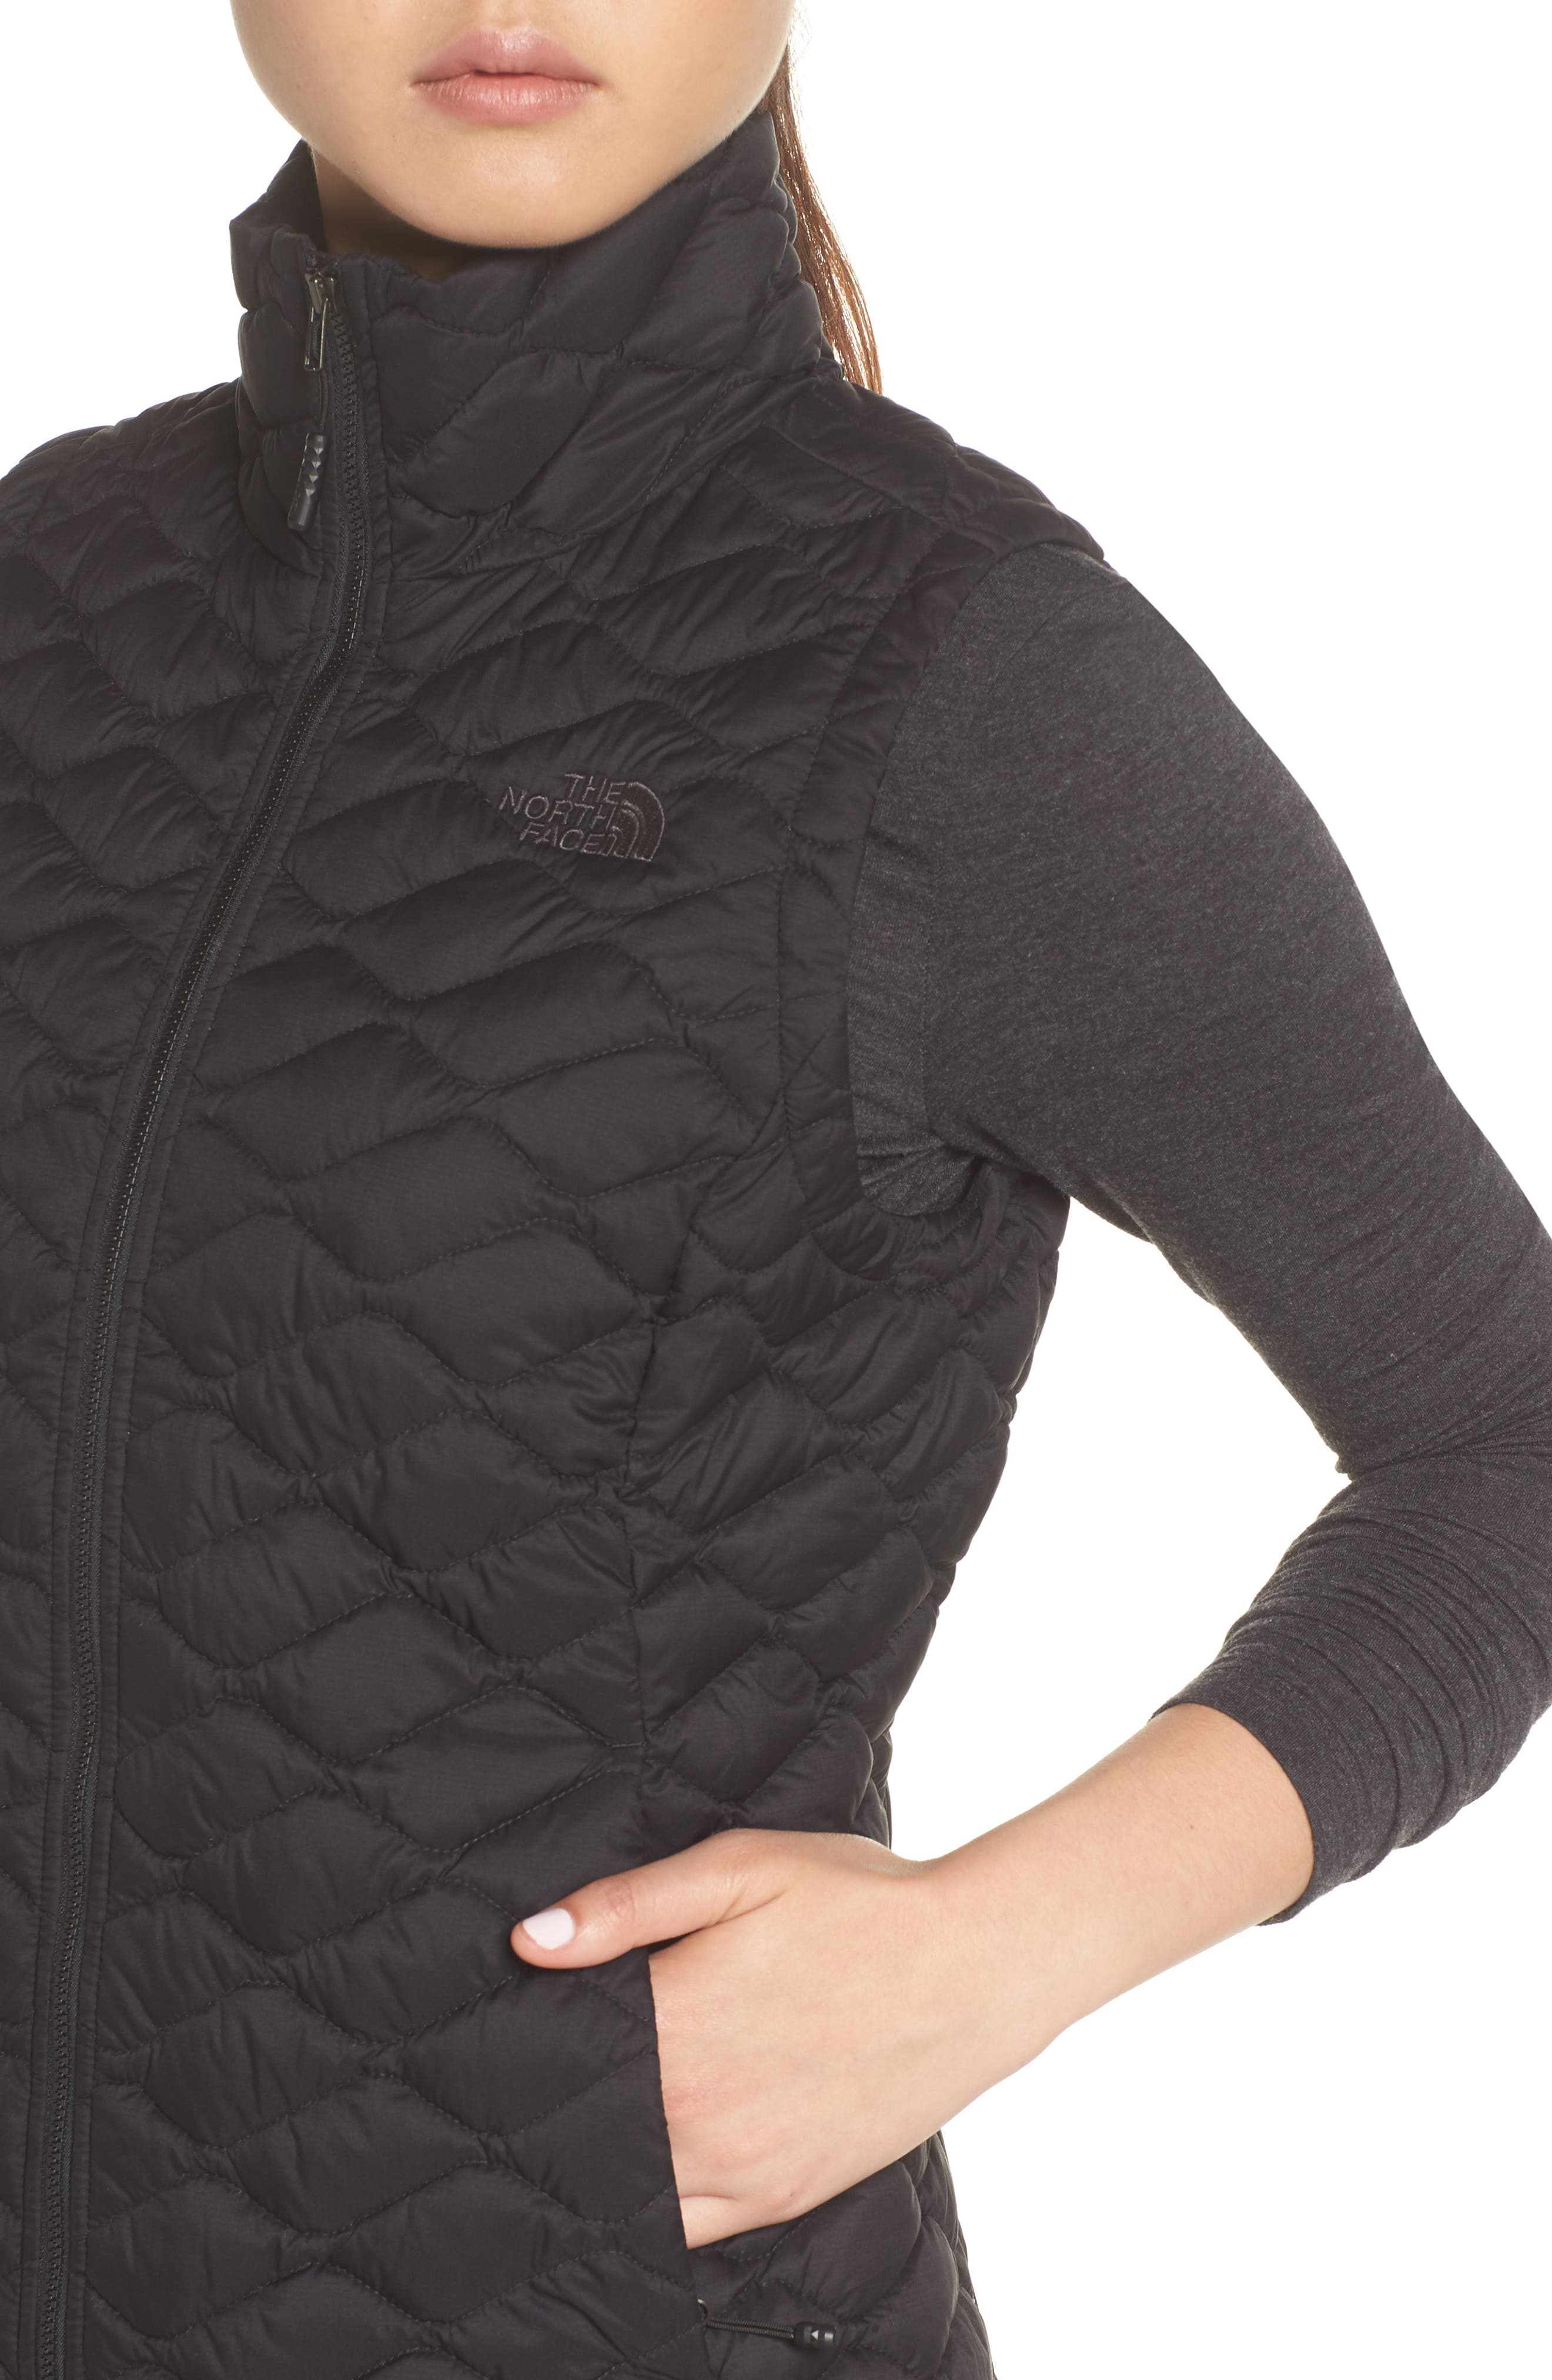 THE NORTH FACE,                             ThermoBall<sup>™</sup> PrimaLoft<sup>®</sup> Vest,                             Alternate thumbnail 4, color,                             TNF BLACK MATTE